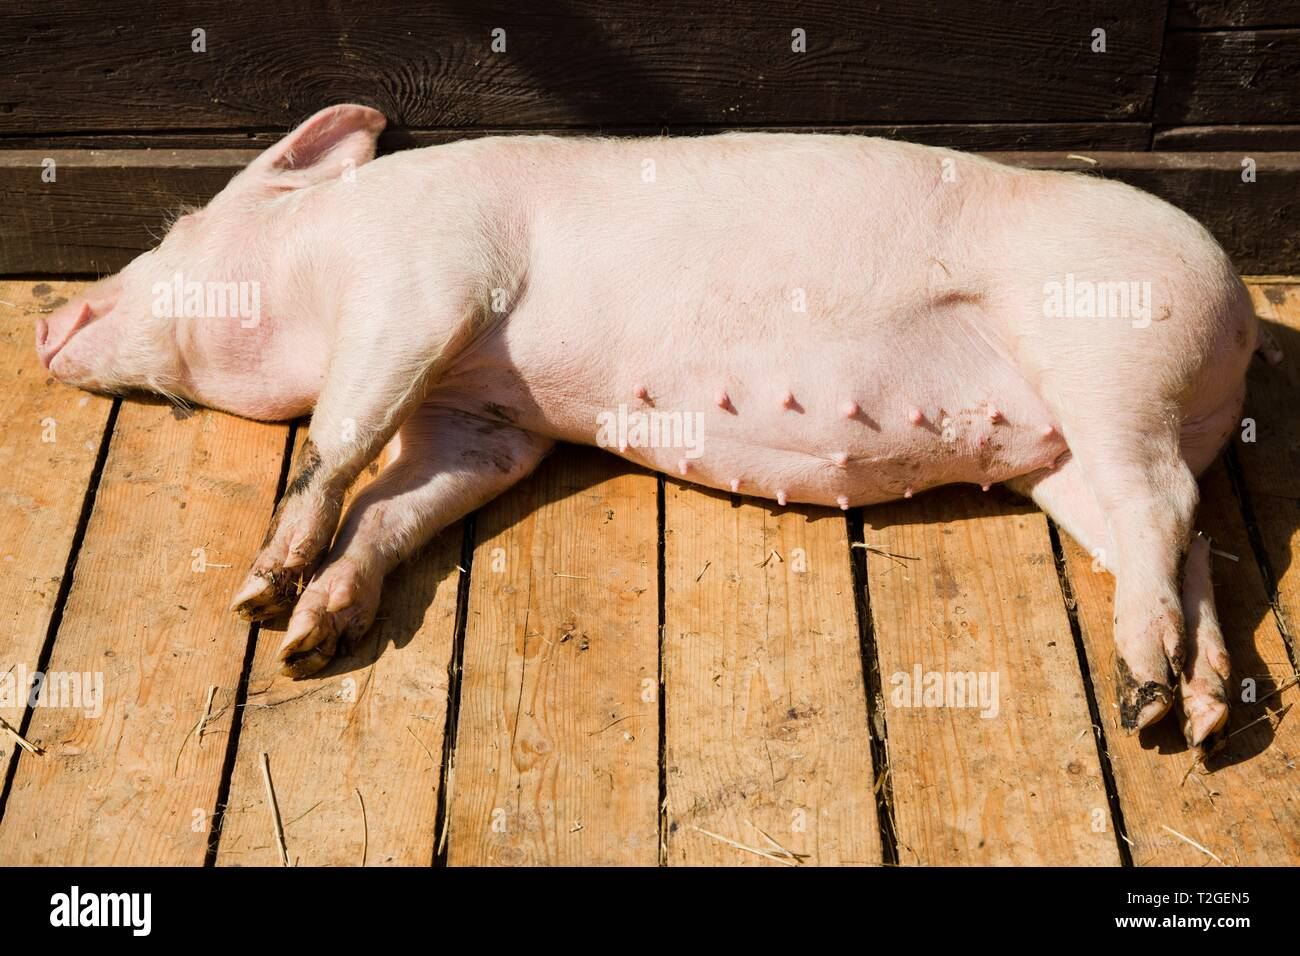 Small pig sleeping on wooden boards in shed on bio piggery farm during sunny day. Stock Photo